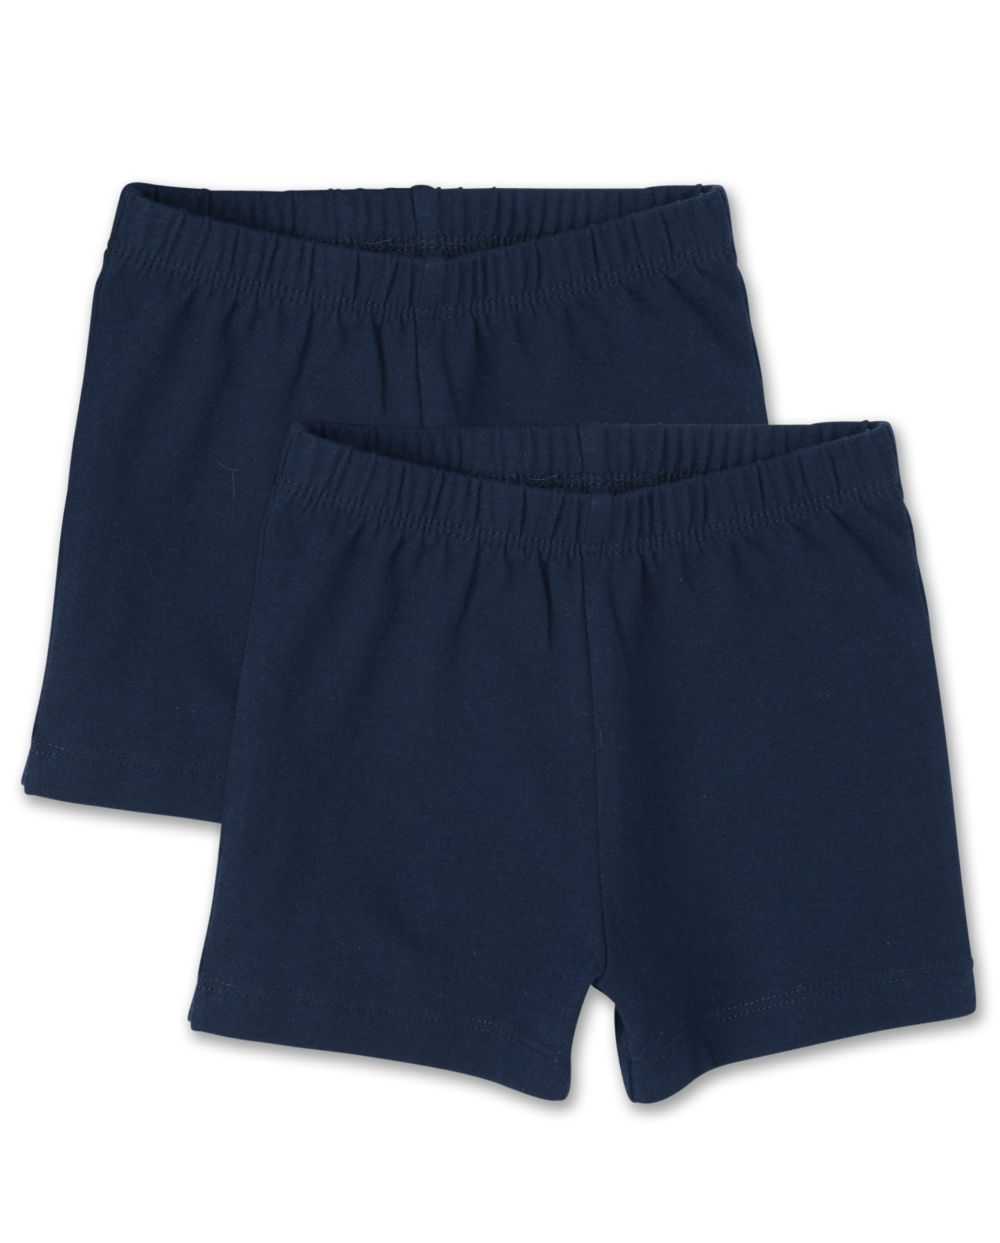 Toddler Girls Uniform Cartwheel Shorts